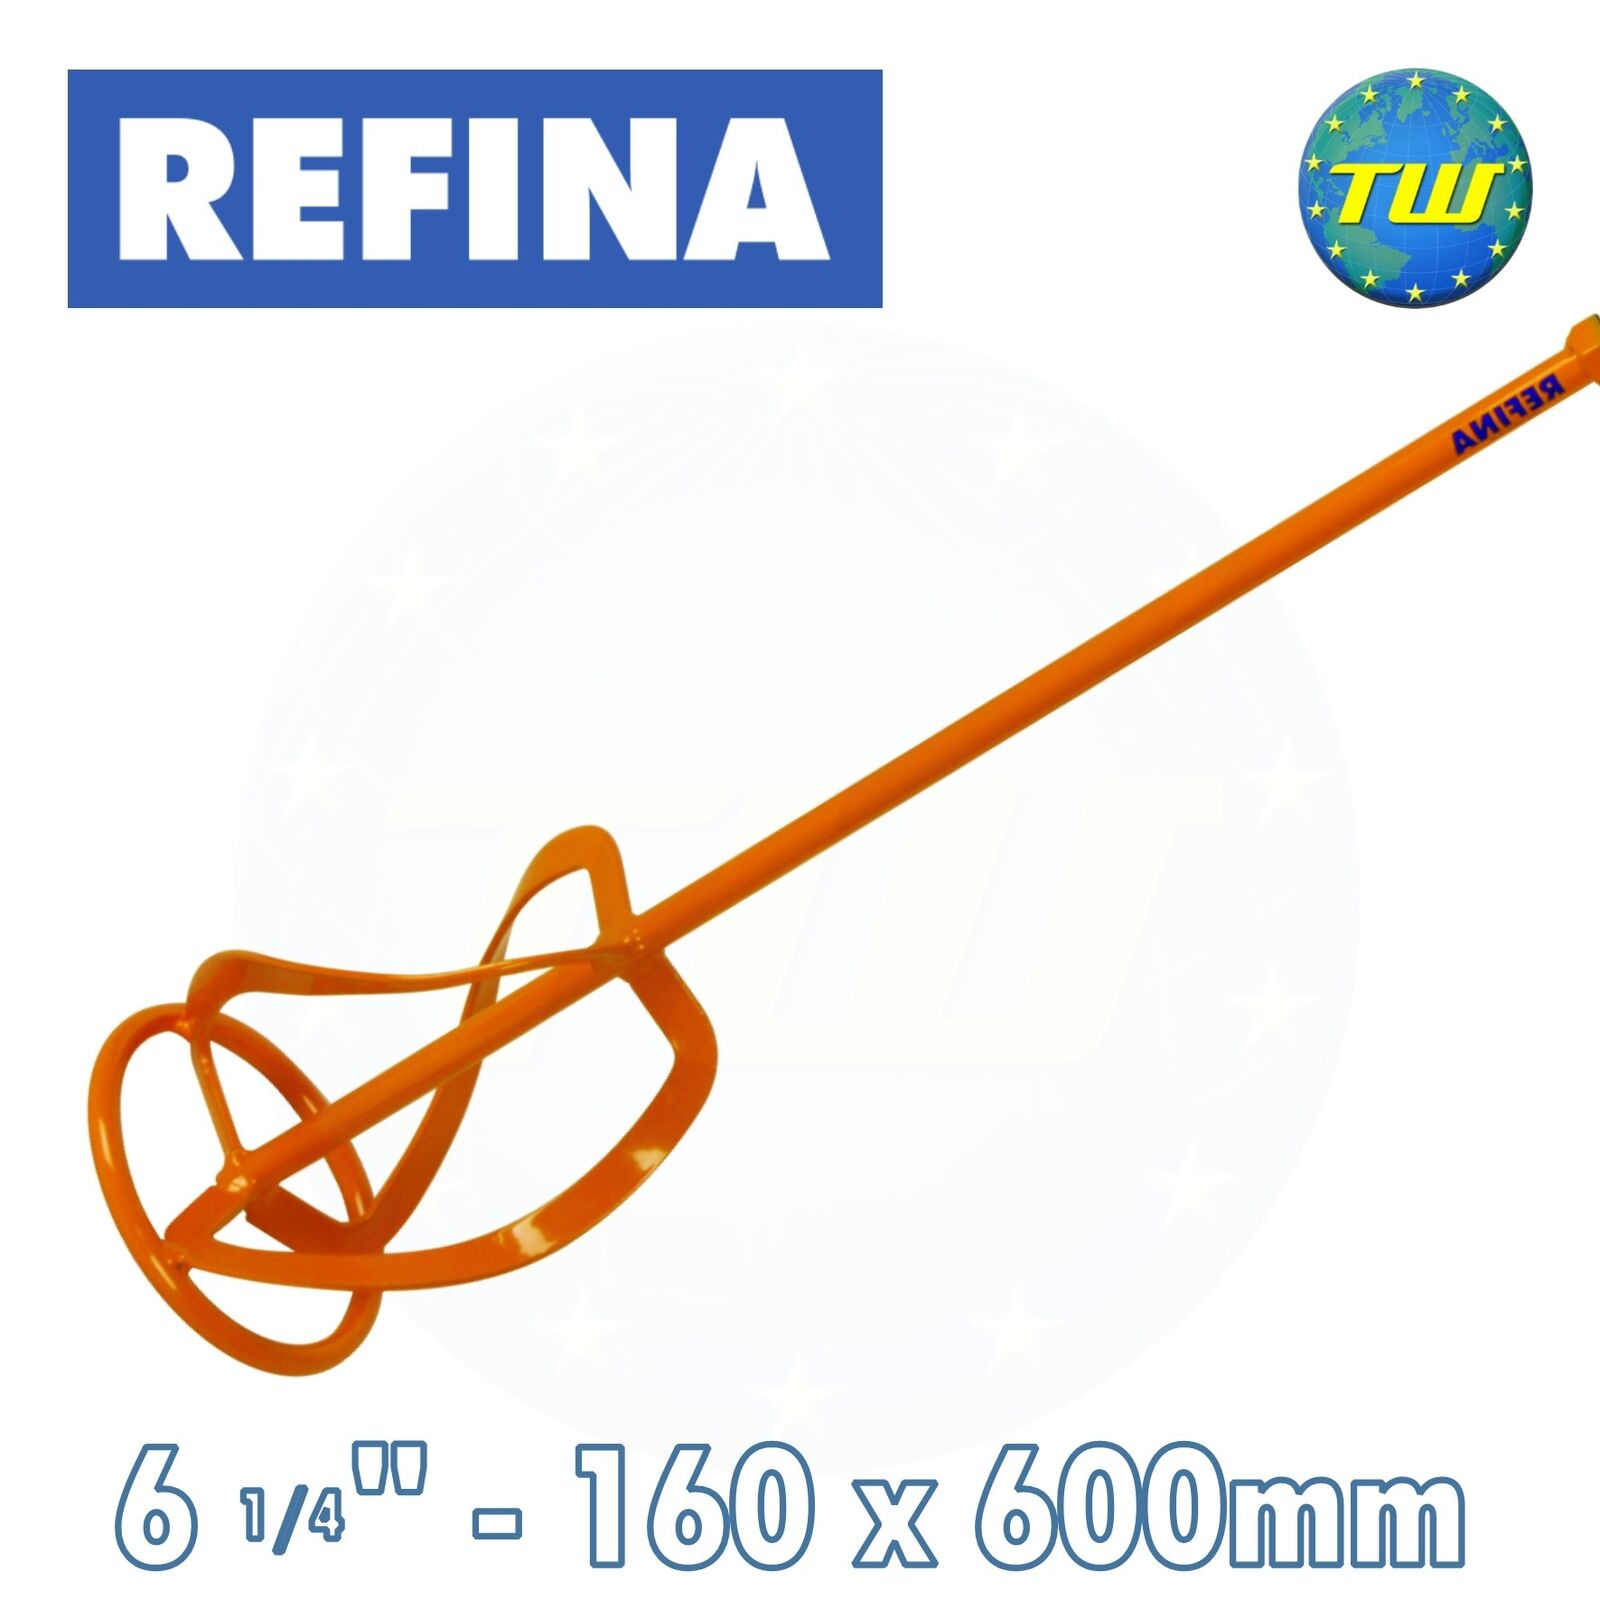 REFINA 6in Plaster & Cement Mixing Paddle M14 Thread Spiral Mixer 160 x 600mm MR